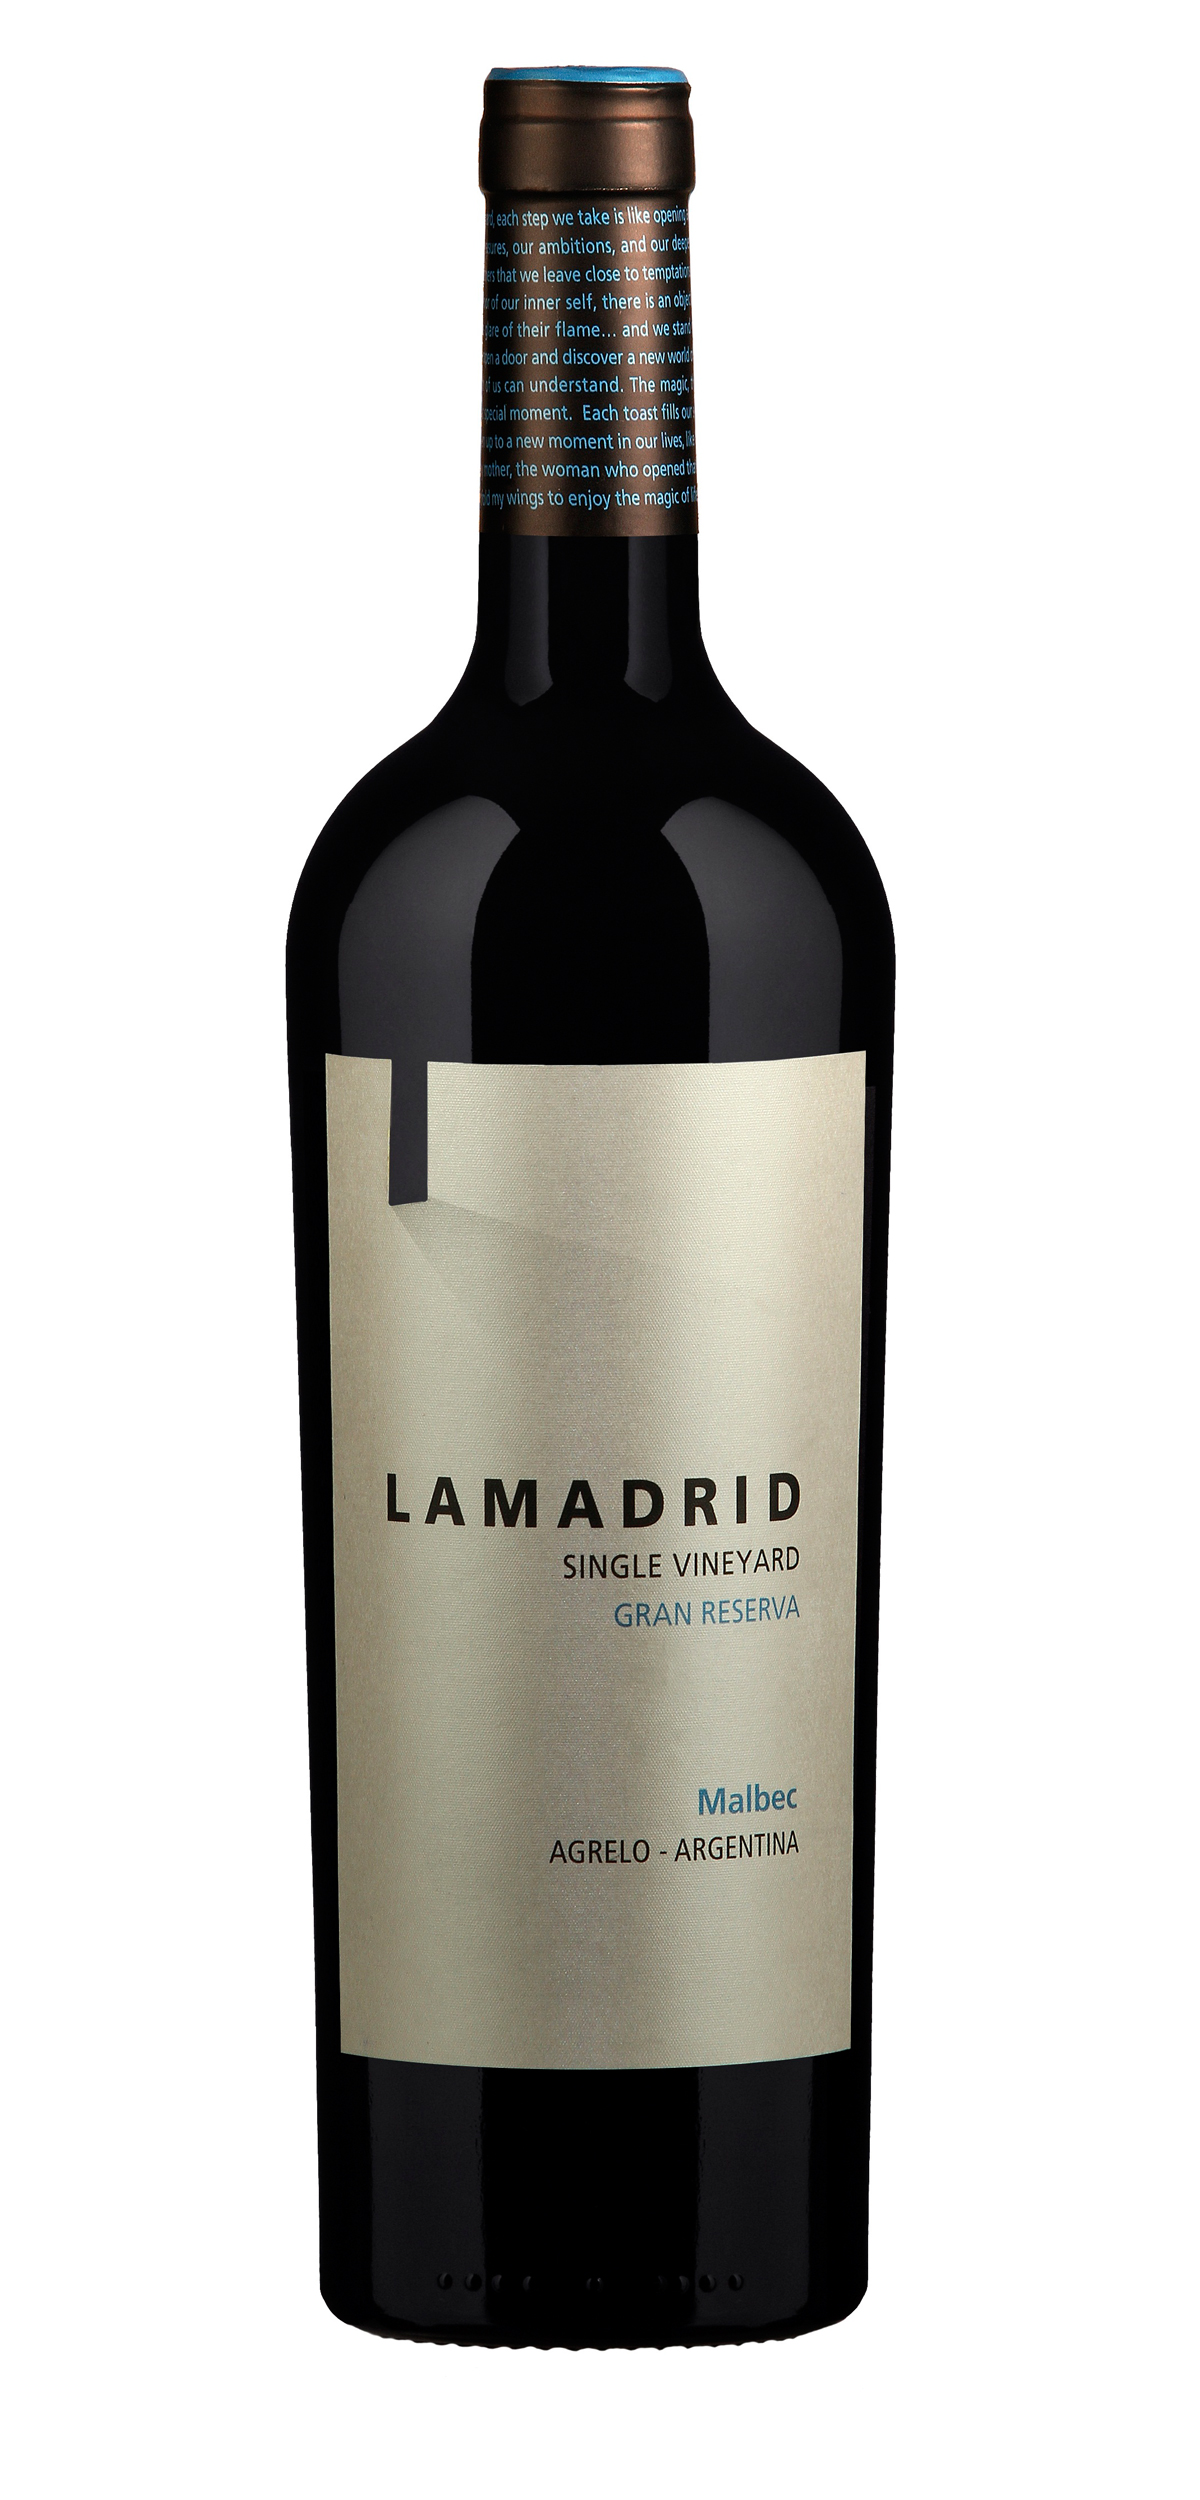 Lamadrid Malbec Gran Reserva wine bottle design